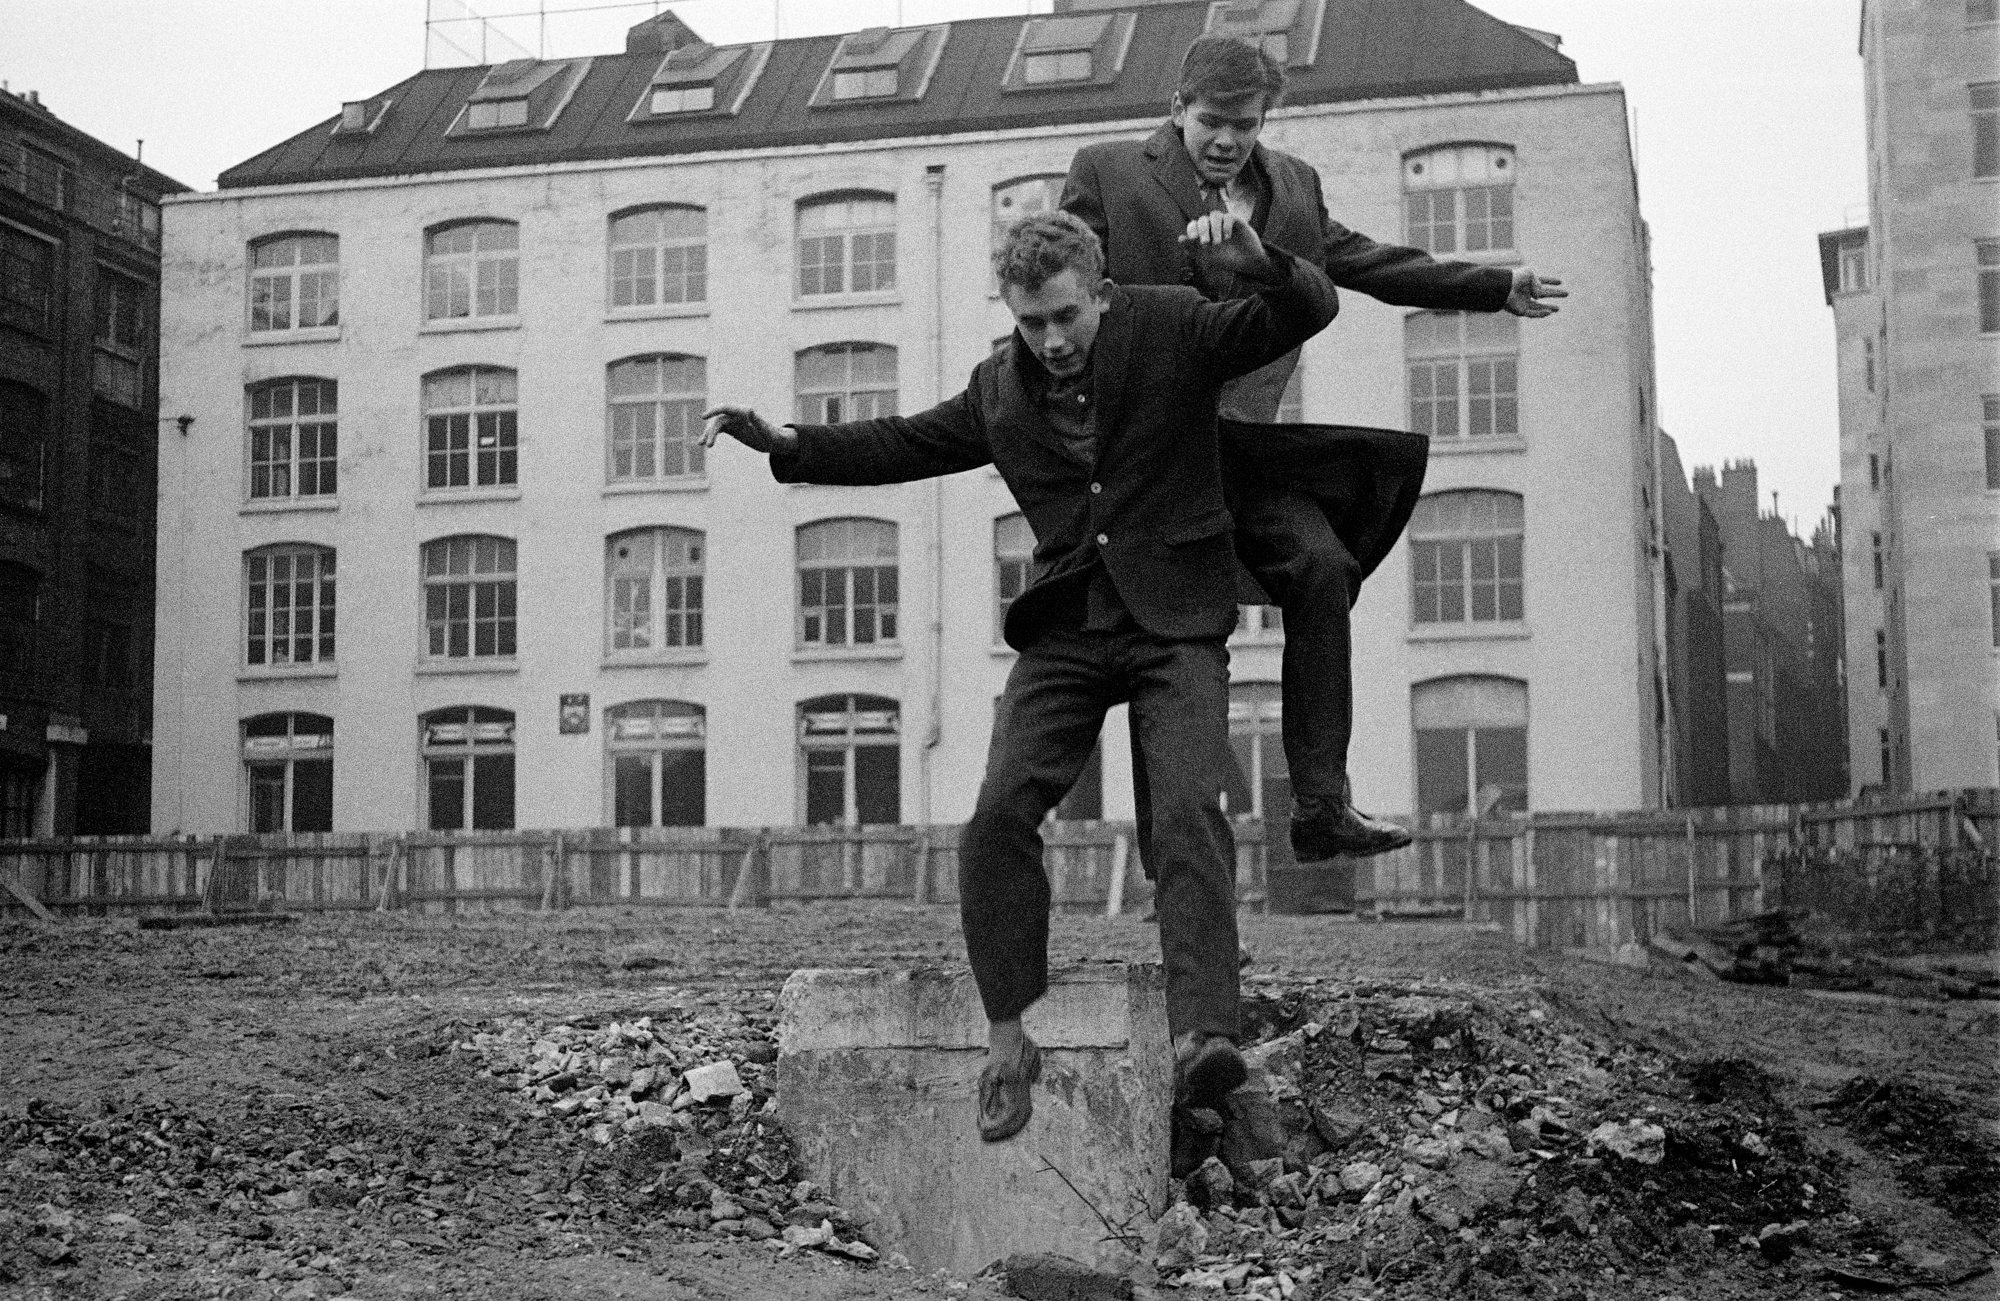 EARLY YEARS - Jimmy Wragg and Bernard Roth Jumping - Swanns Wharf, City of London - 1956